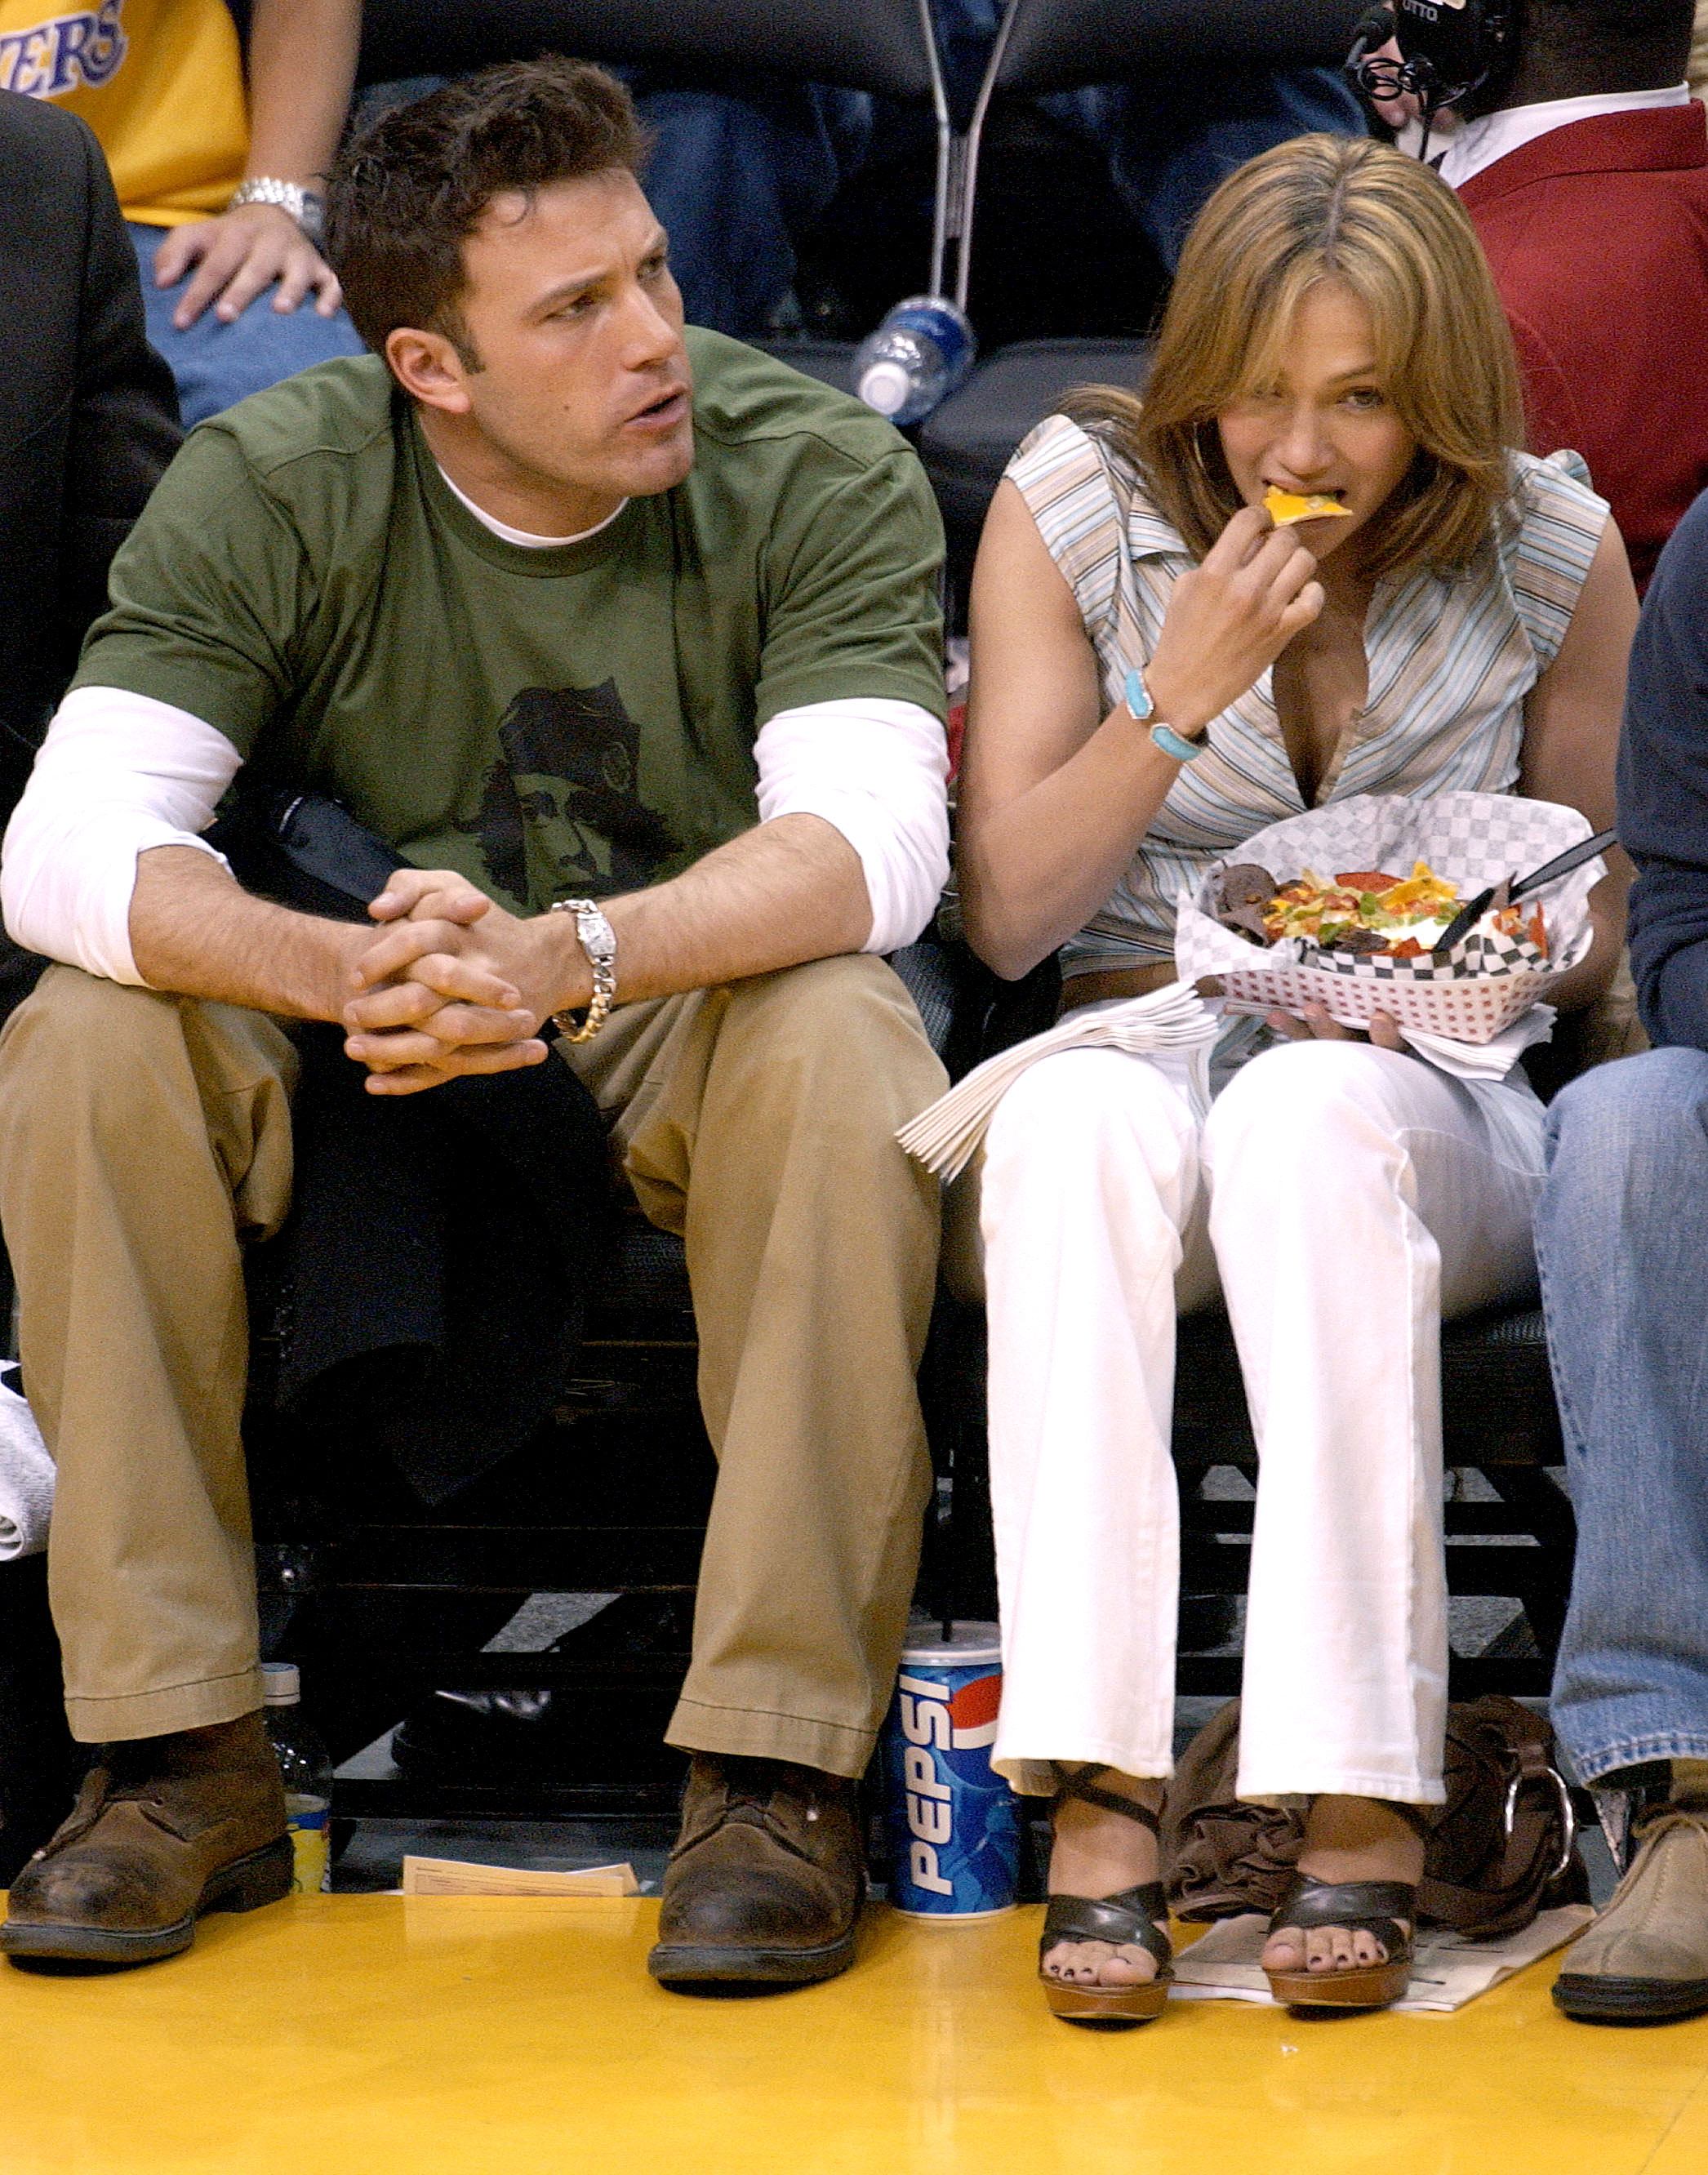 Celebs Eating Courtside - The formerly engaged costars have long since broken up, but before they split in 2004, they sat courtside to watch the Los Angeles Lakers take on the San Antonio Spurs in a playoff game at the Staples Center on May 11, 2003, in Los Angeles. While Affleck had his eyes on the game, Lopez was distracted by her nachos.